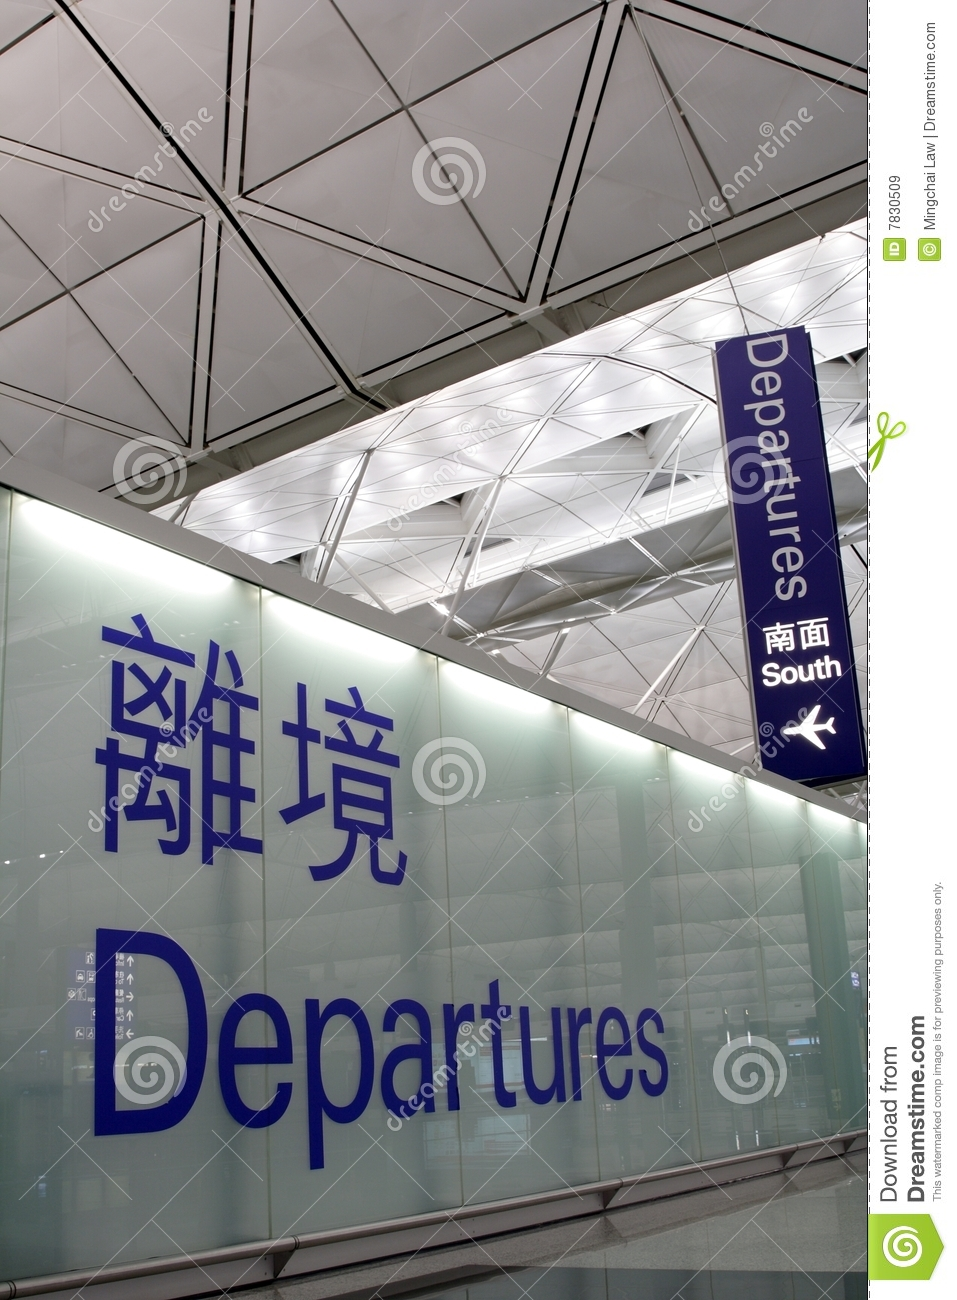 Departures royalty free stock images image 7830509 - Felpudo arrivals departures ...